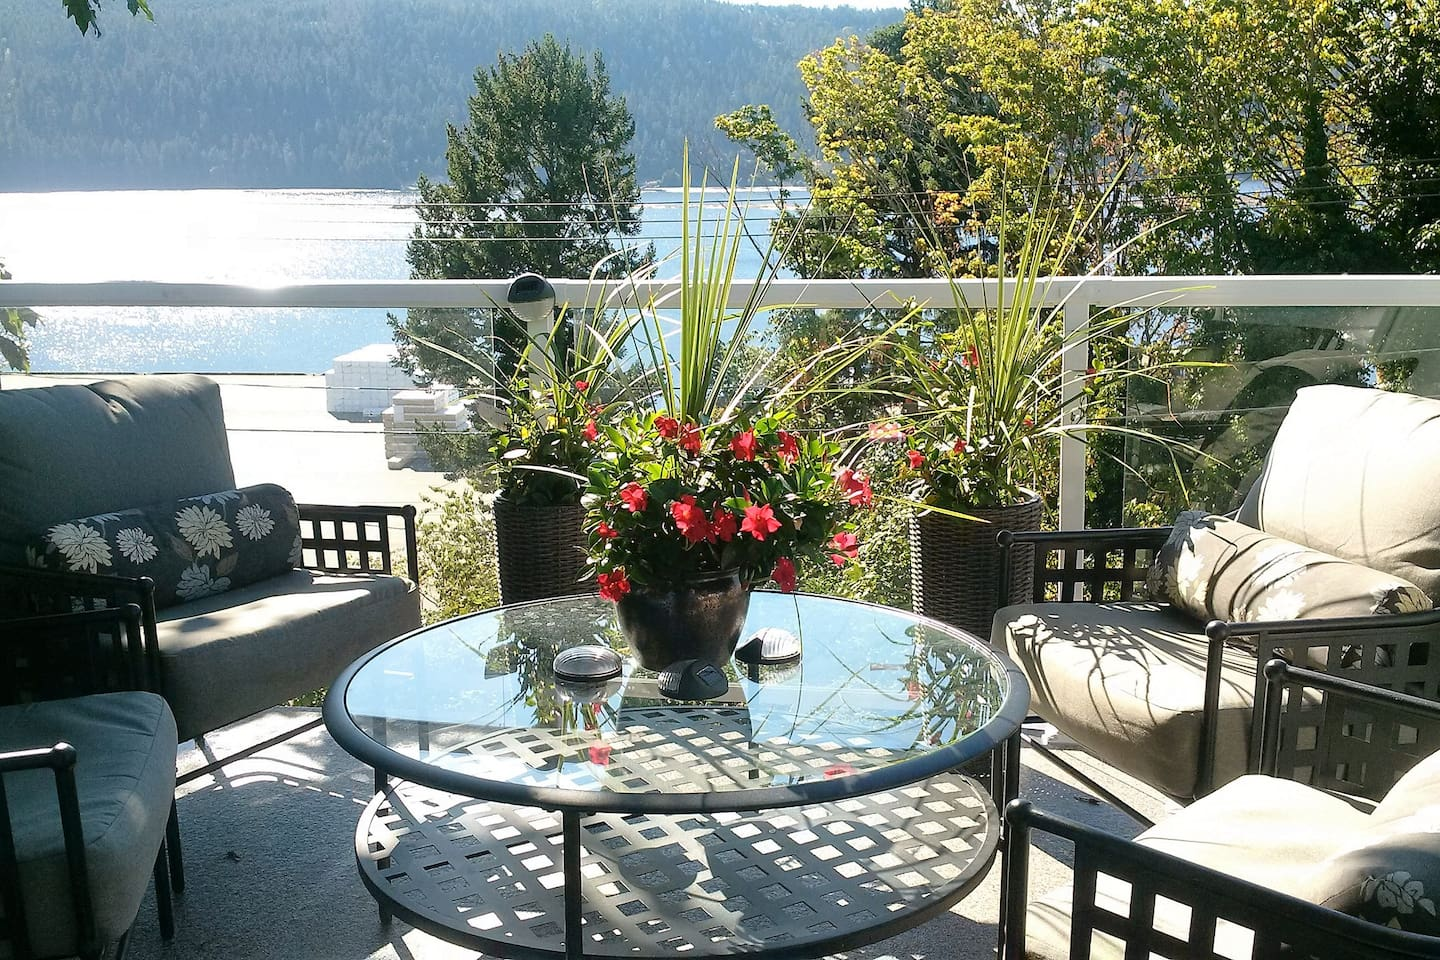 Relax and enjoy the beautiful canal views on the deck...